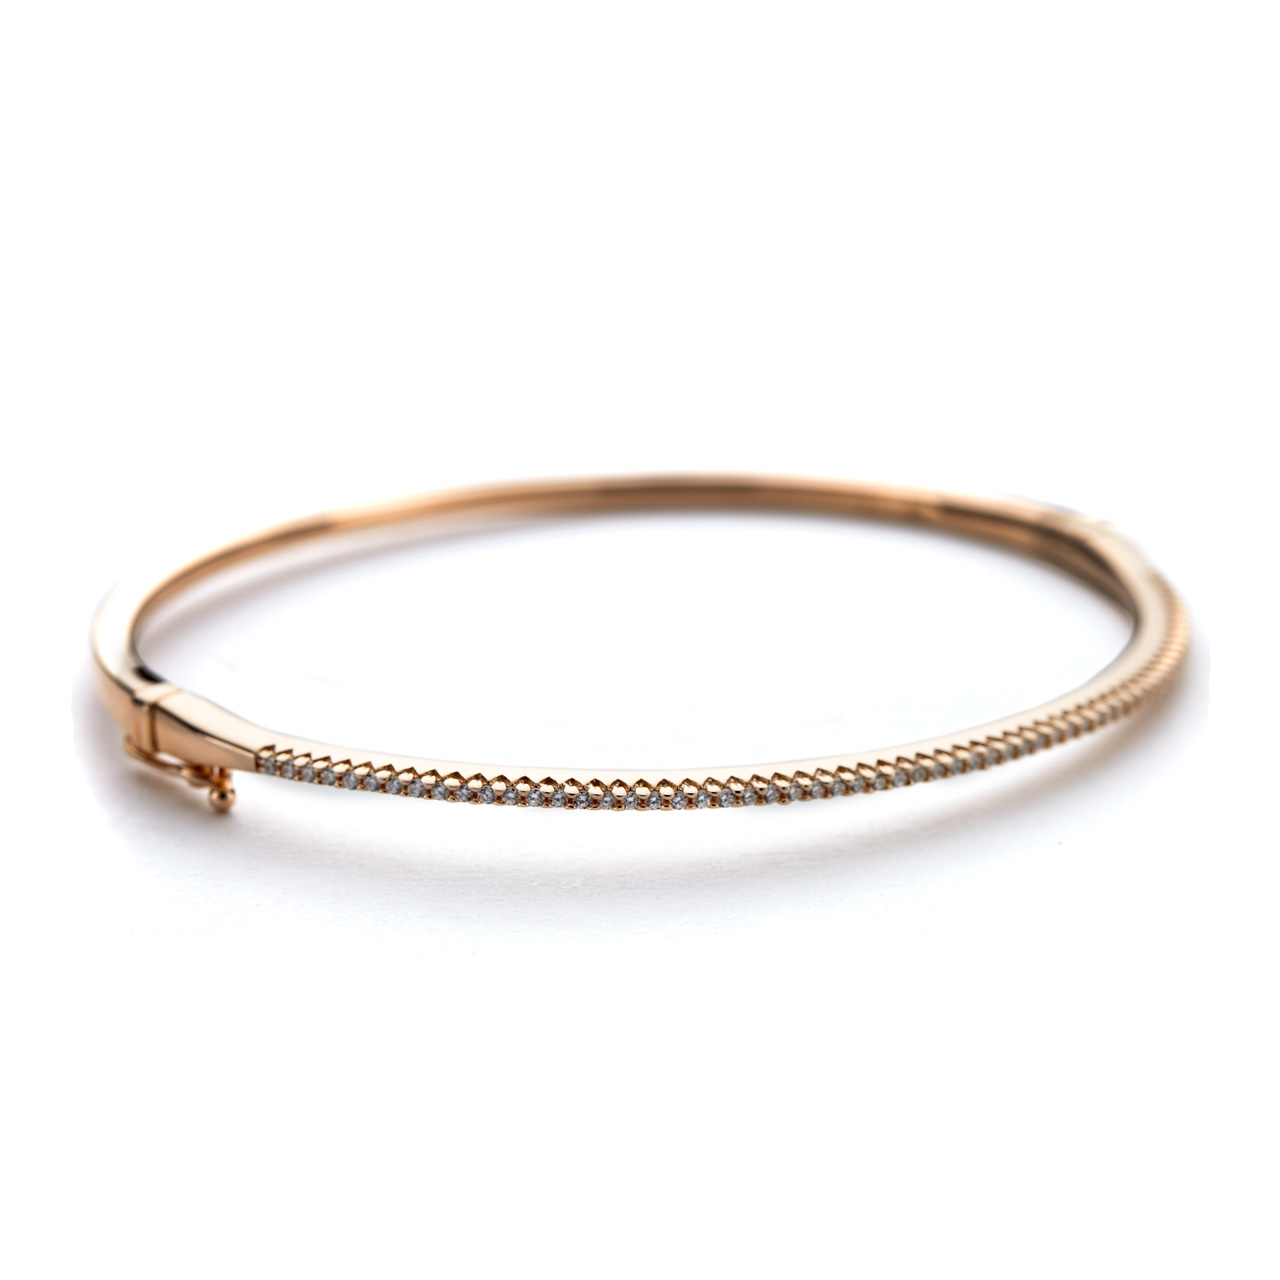 co barbell bangle gold cuff summer minimalist ashley bangles jewellery singapore shop half in